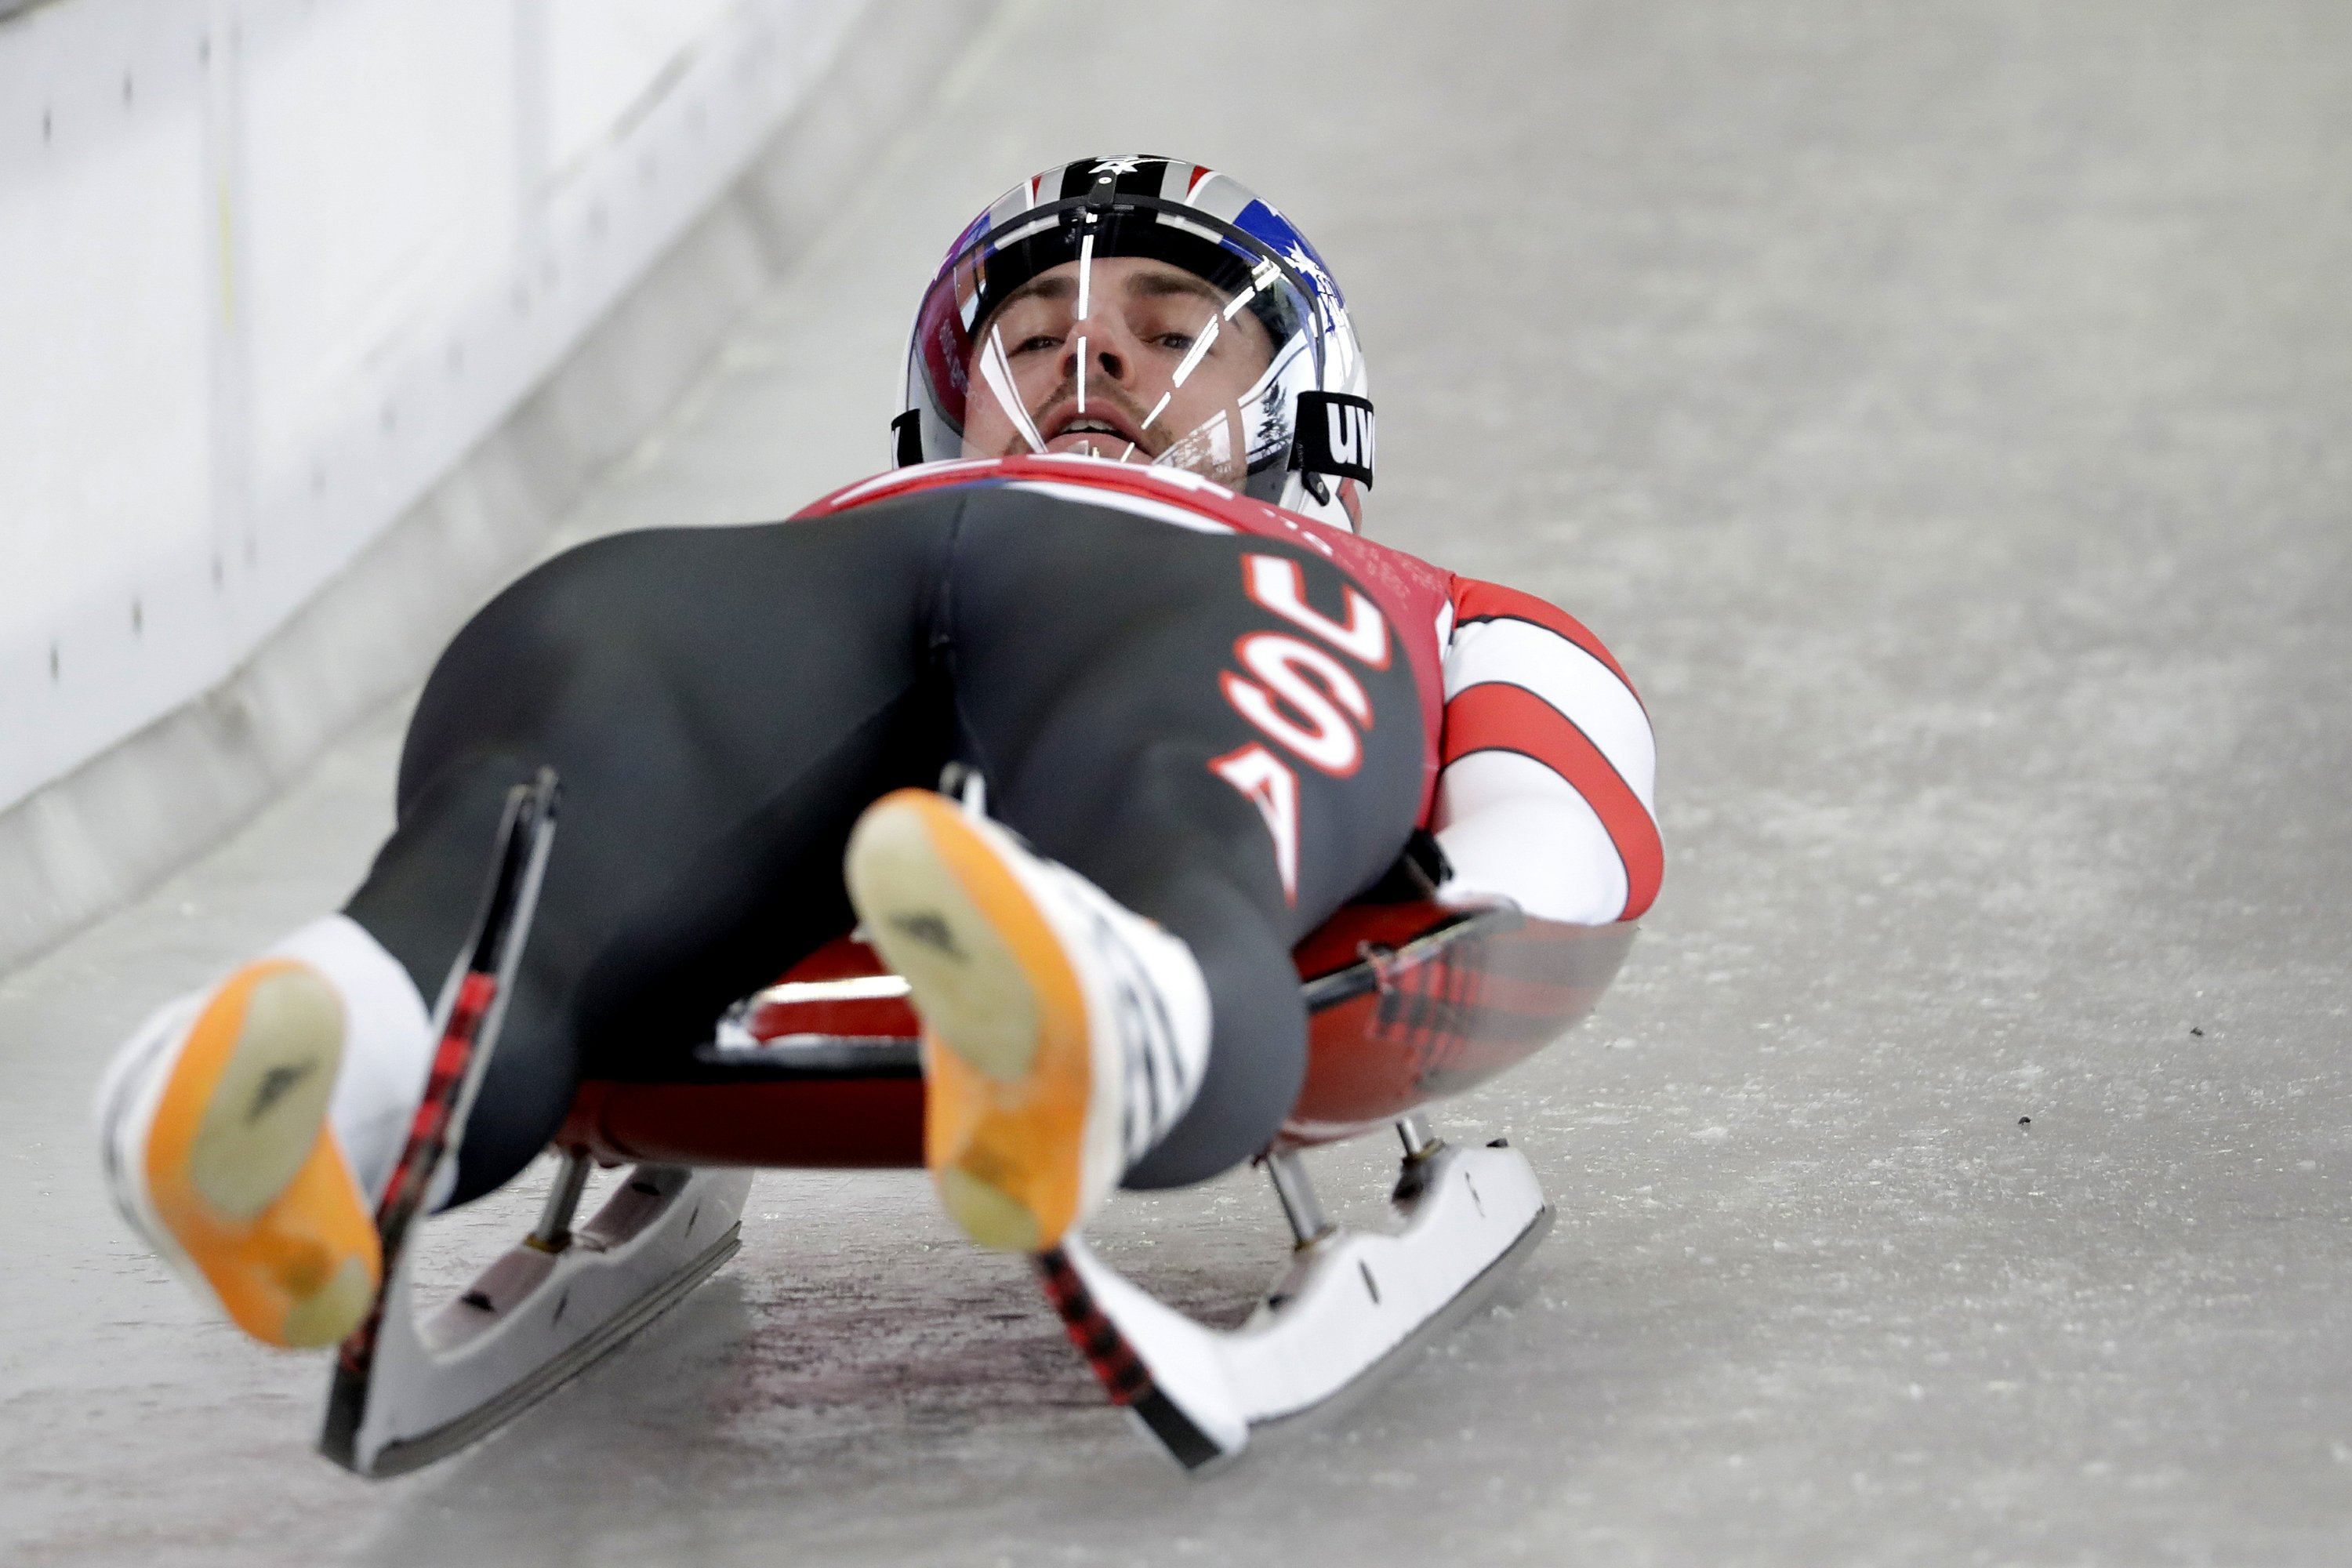 Restart: US bobsled, skeleton, luge teams have new look